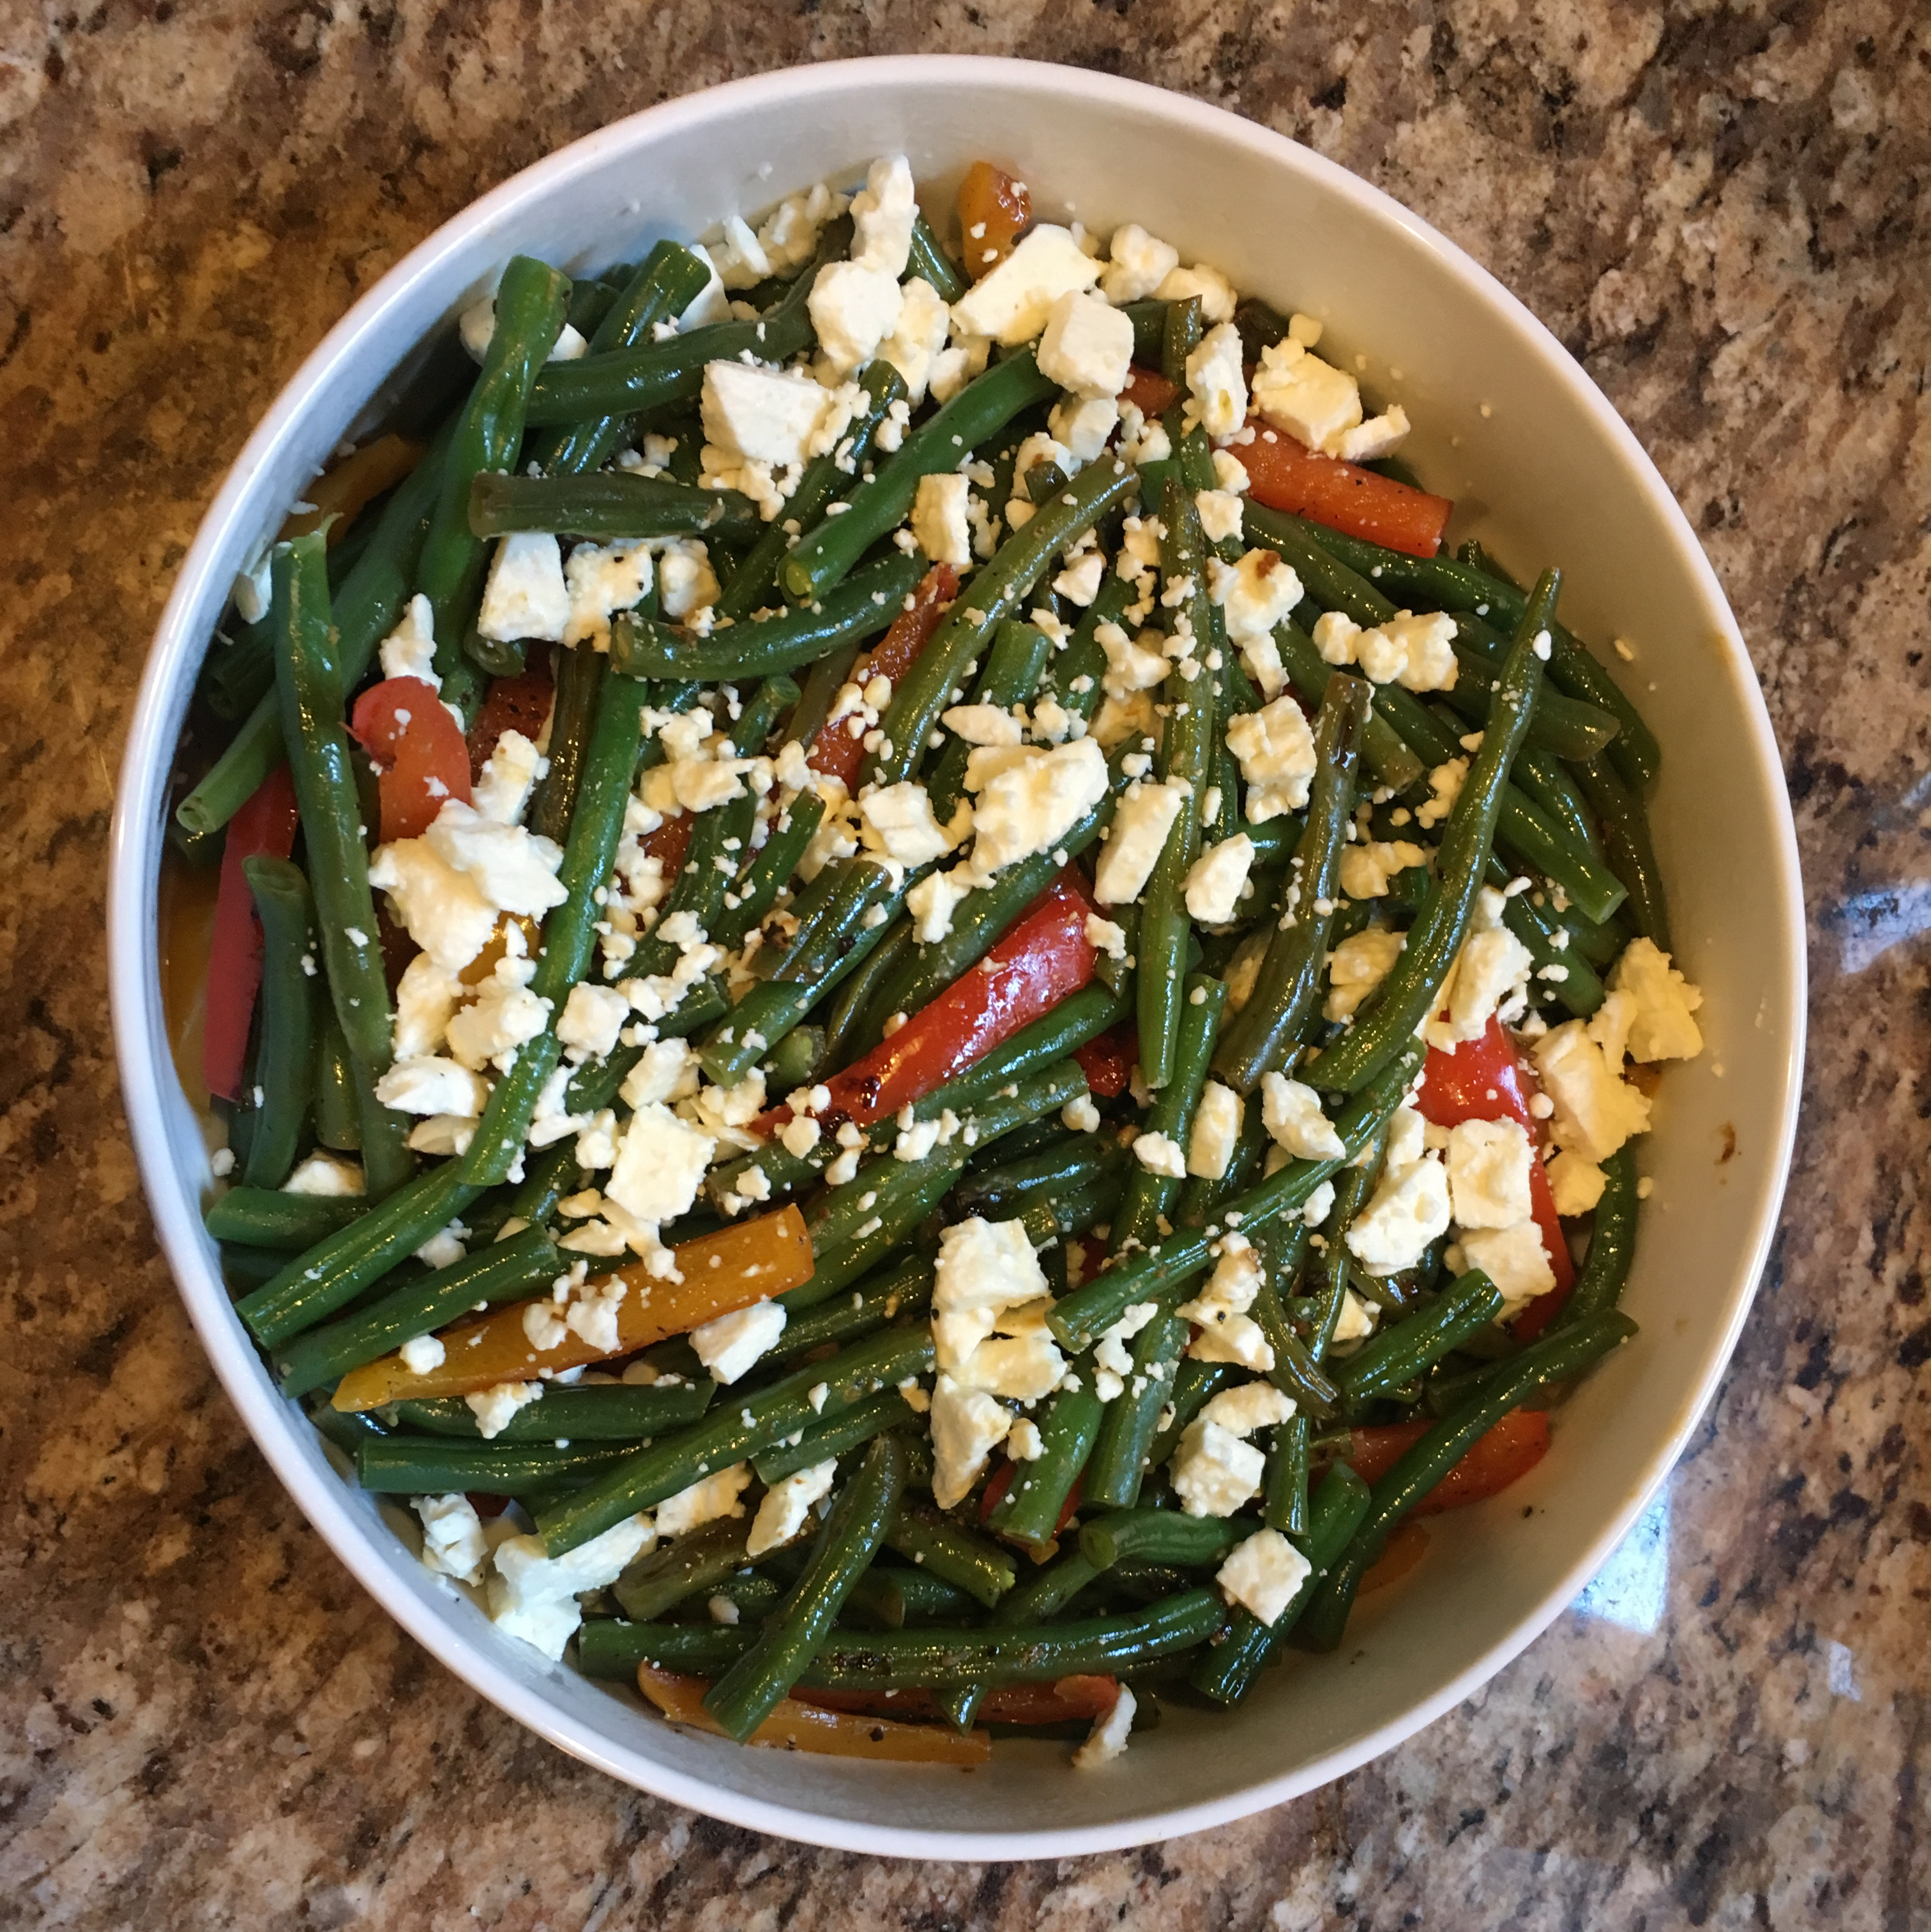 Arica's Green Beans and Feta Landon Lacey Wehbe